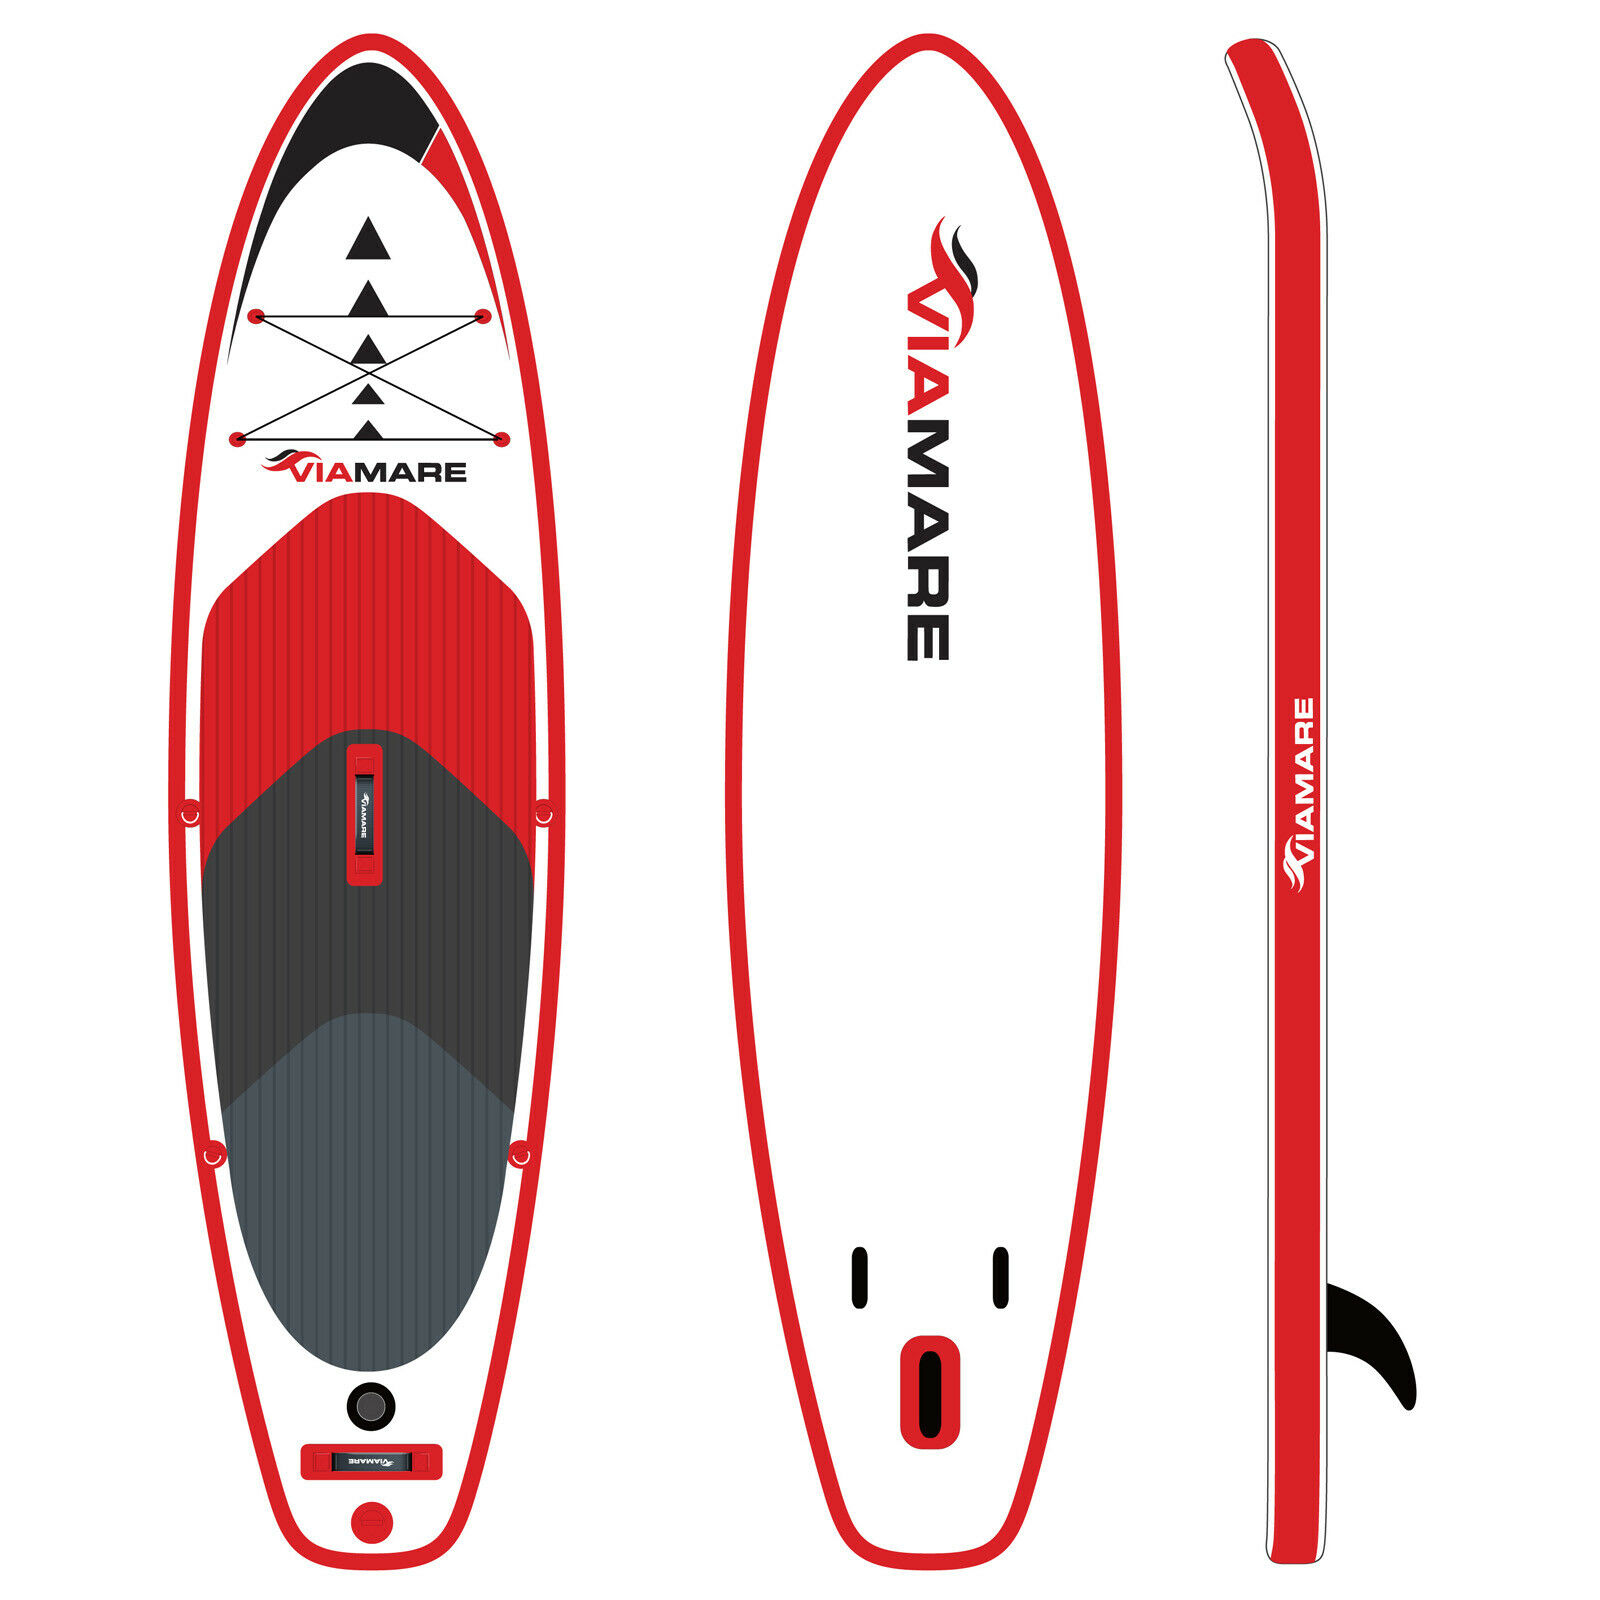 Sup Board set viamare 300 cm inflatable Stand Up paddle board hinchable